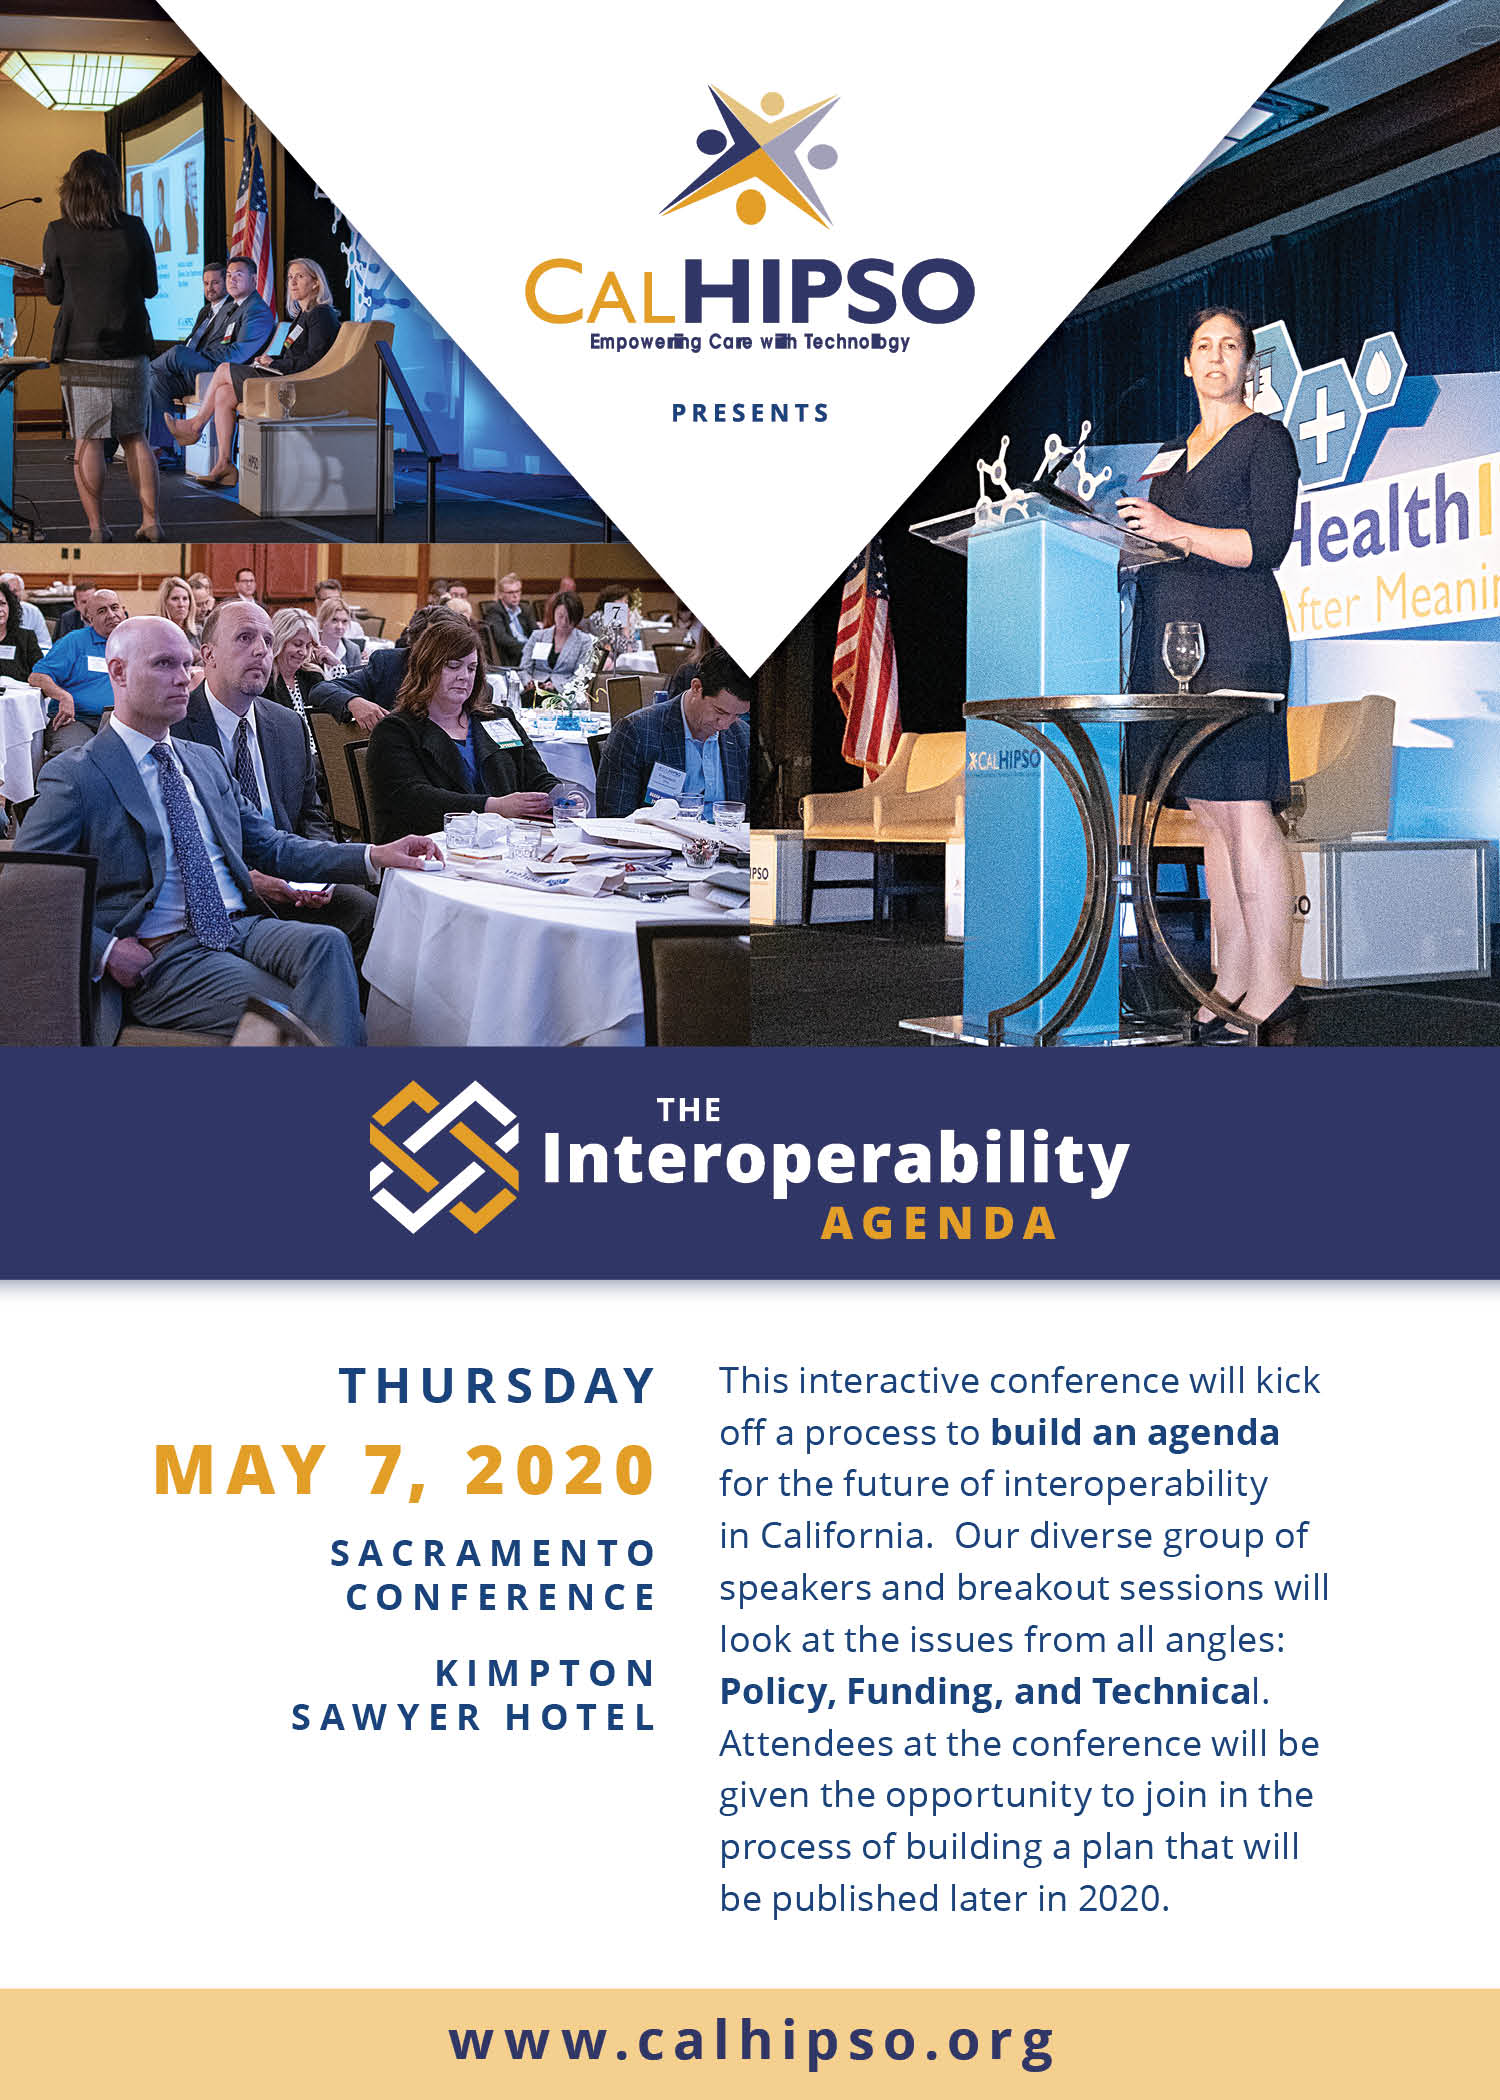 CALHIPSO Presents: The Interoperability Agenda, Thursday May 7 2020. Sacramento Conference, Kimpton Sawyer Hotel. This interactive conference will kick off a process to build an agenda for the future of interoperability in California. Our Diverse group of speakers and breakout sessions will look at the issues from all angles: Policy, Funding, and Technical. Attendees at the conference will be given the opportunity to join in the process of building a plan that will be published later in 2020.